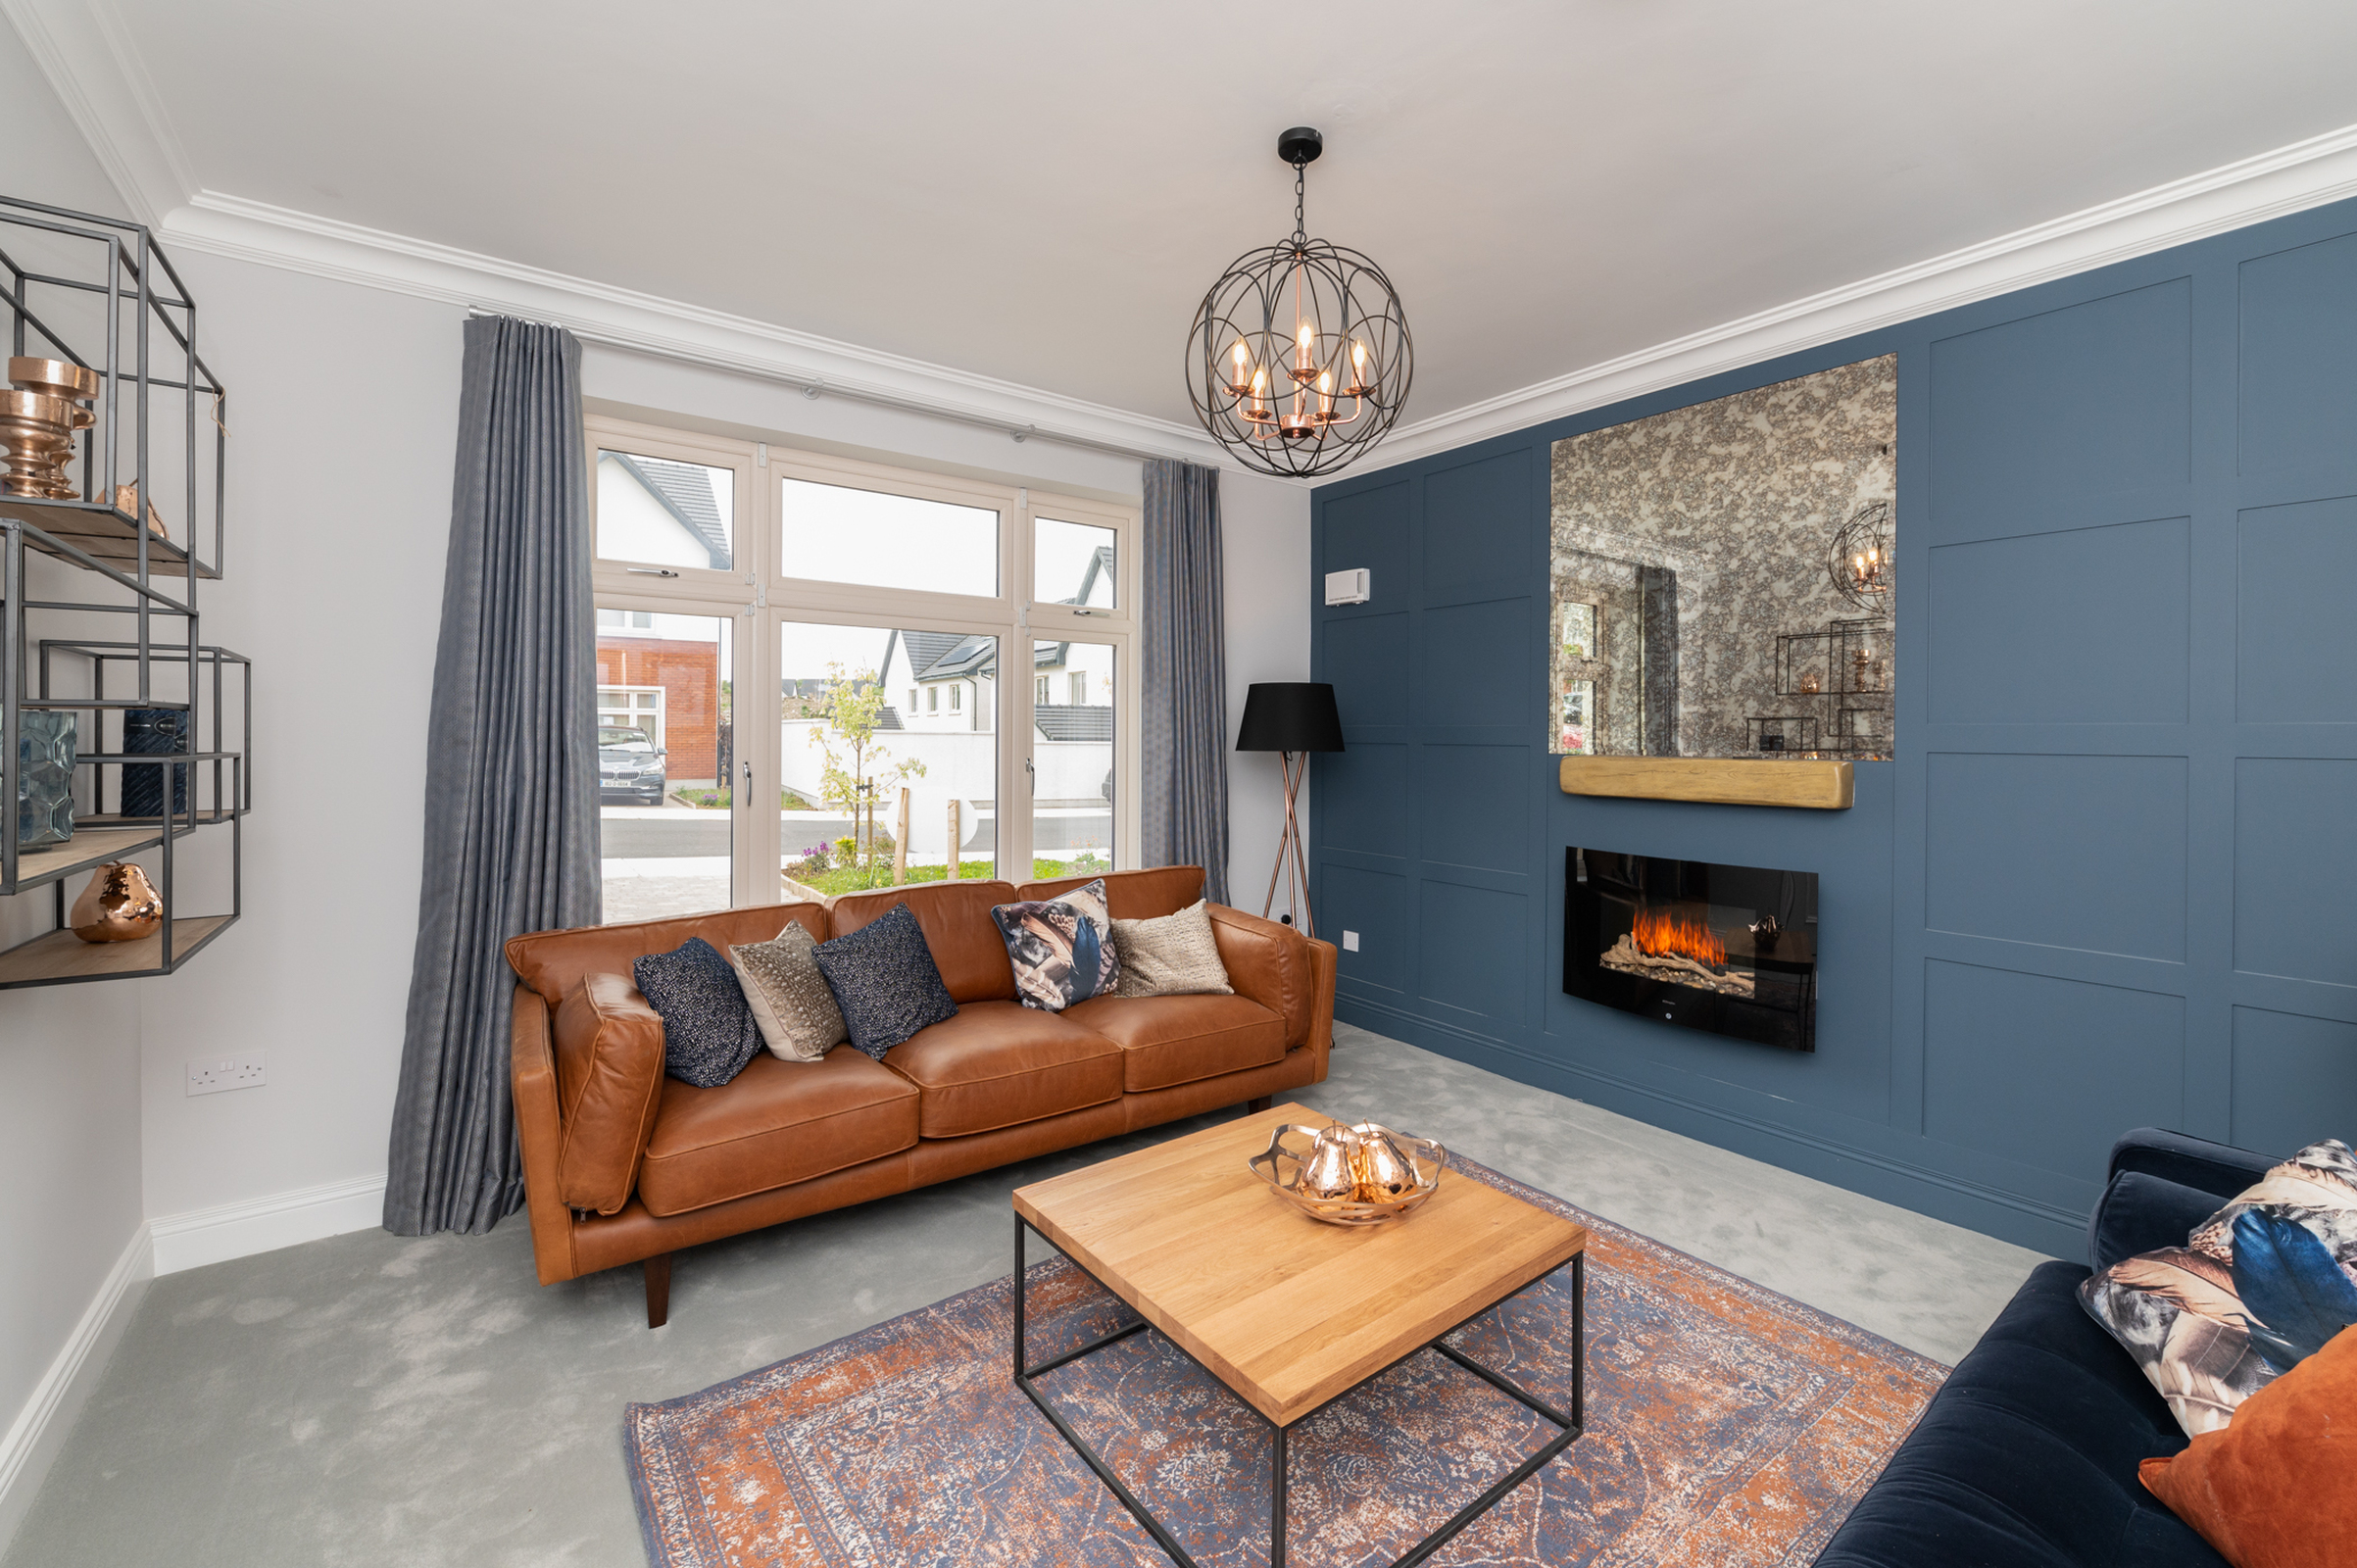 41 THE LAWN- 4 BED SEMI, 'Janeville', Carrigaline, Co. Cork